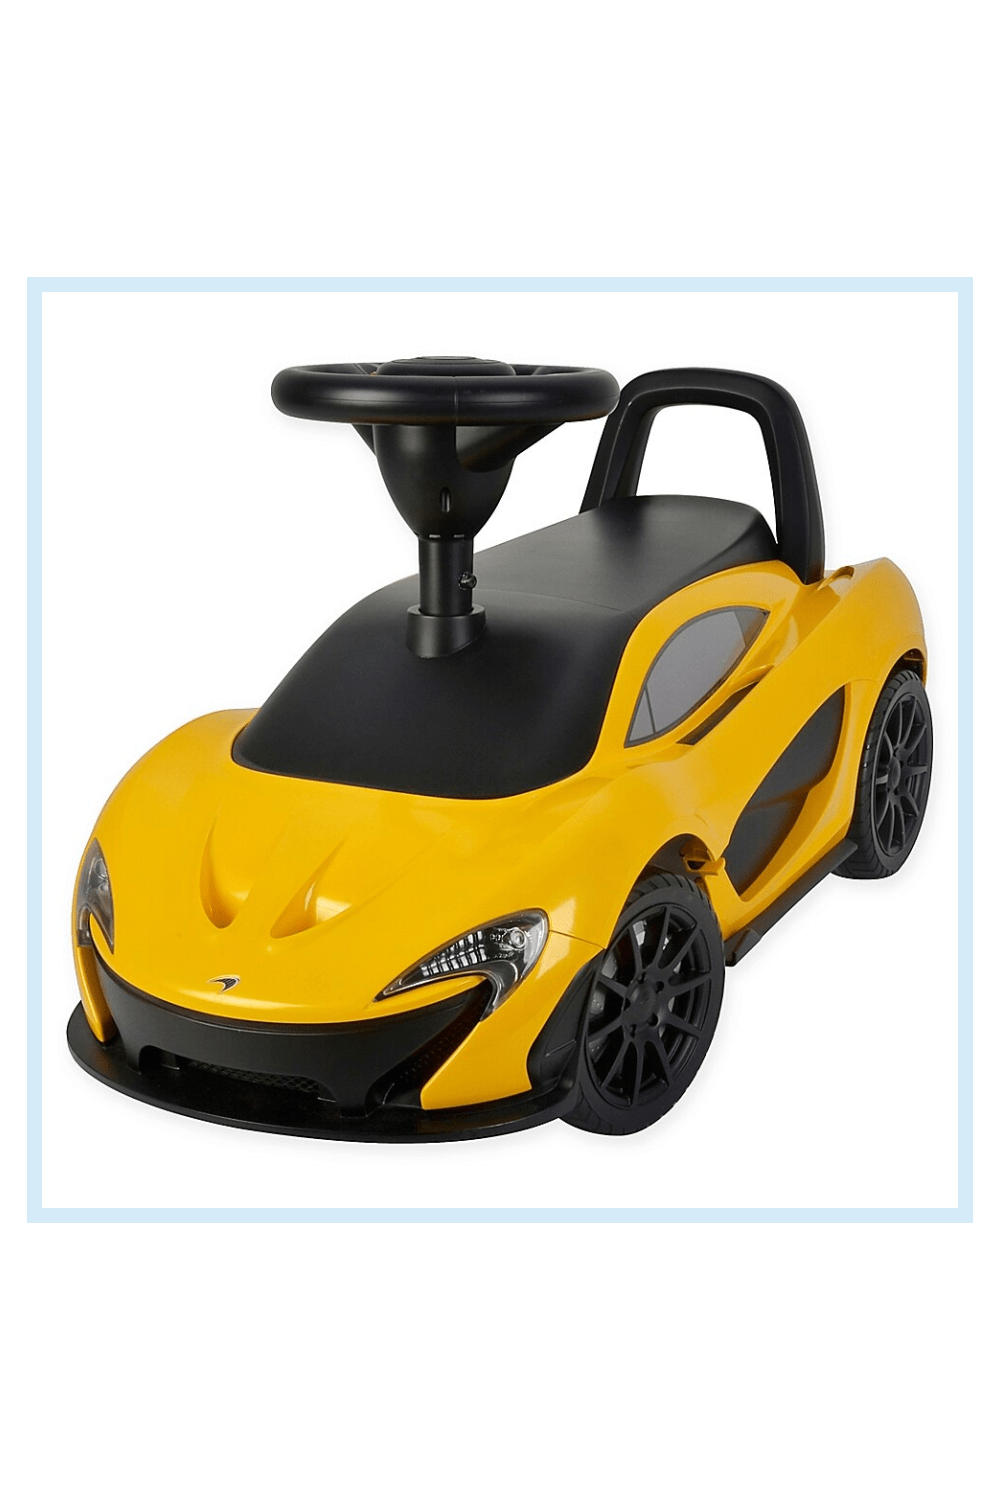 Photo of Best Ride On Cars Mclaren Push Car In Yellow